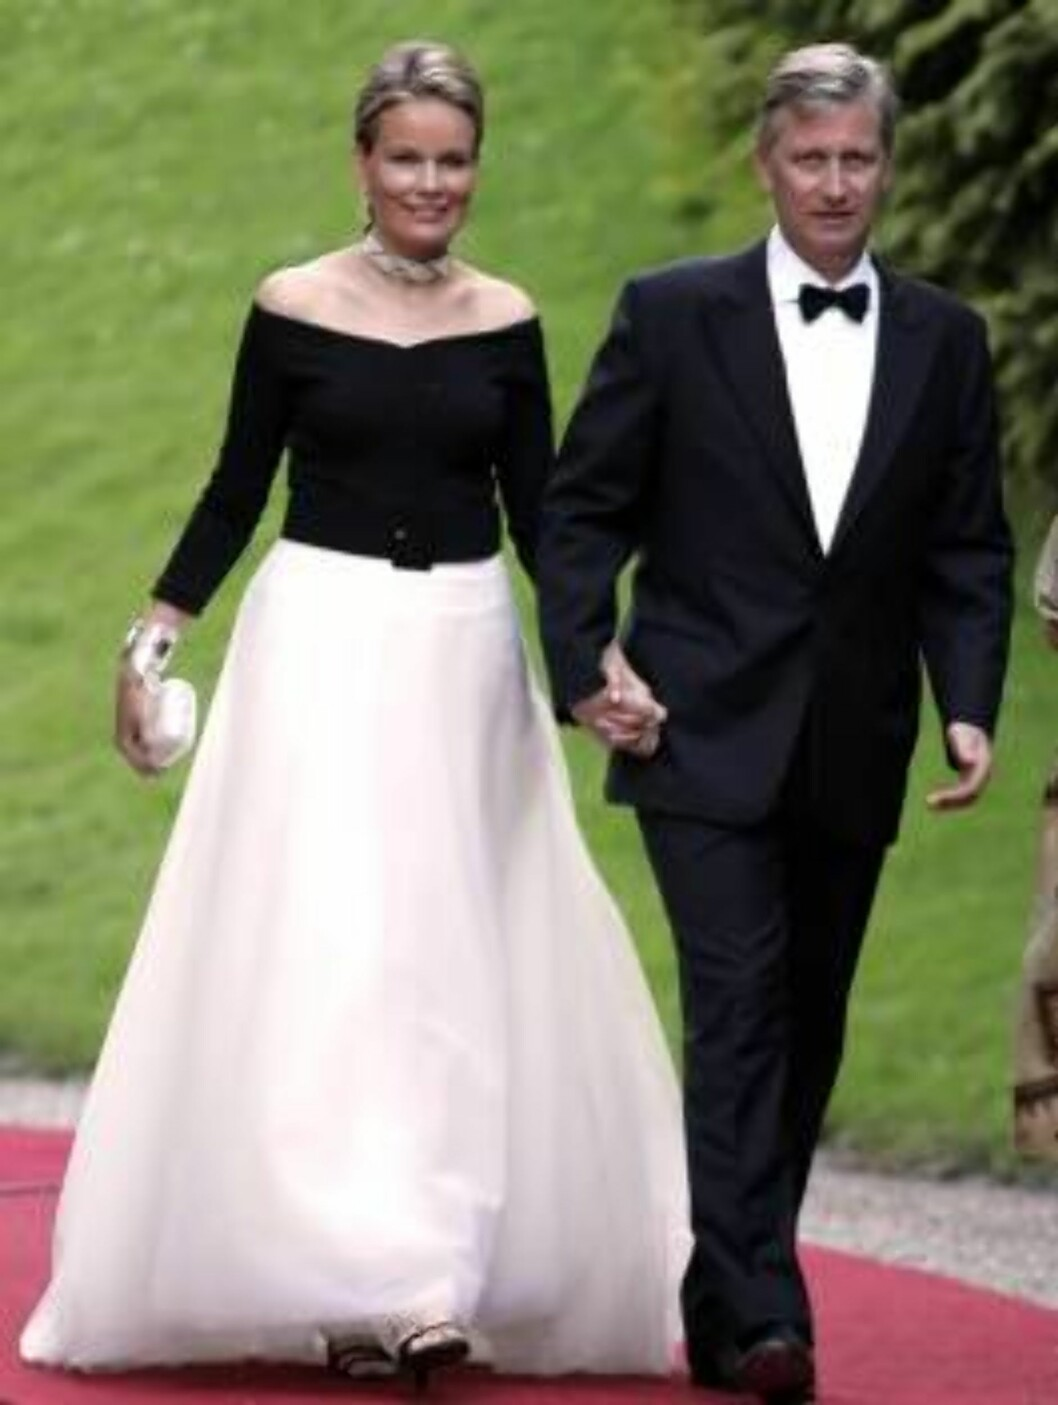 Crown Prince Philippe & Crown Princess Mathilde of Belgium attend the SIlver Wedding Anniversary Celebrations of Grand Duke Henri & Grand Duchess Maria-Theresa of Luxembourg. Gala Dinner at the Chateau de Berg. Picture: UK Press Foto: All Over Press